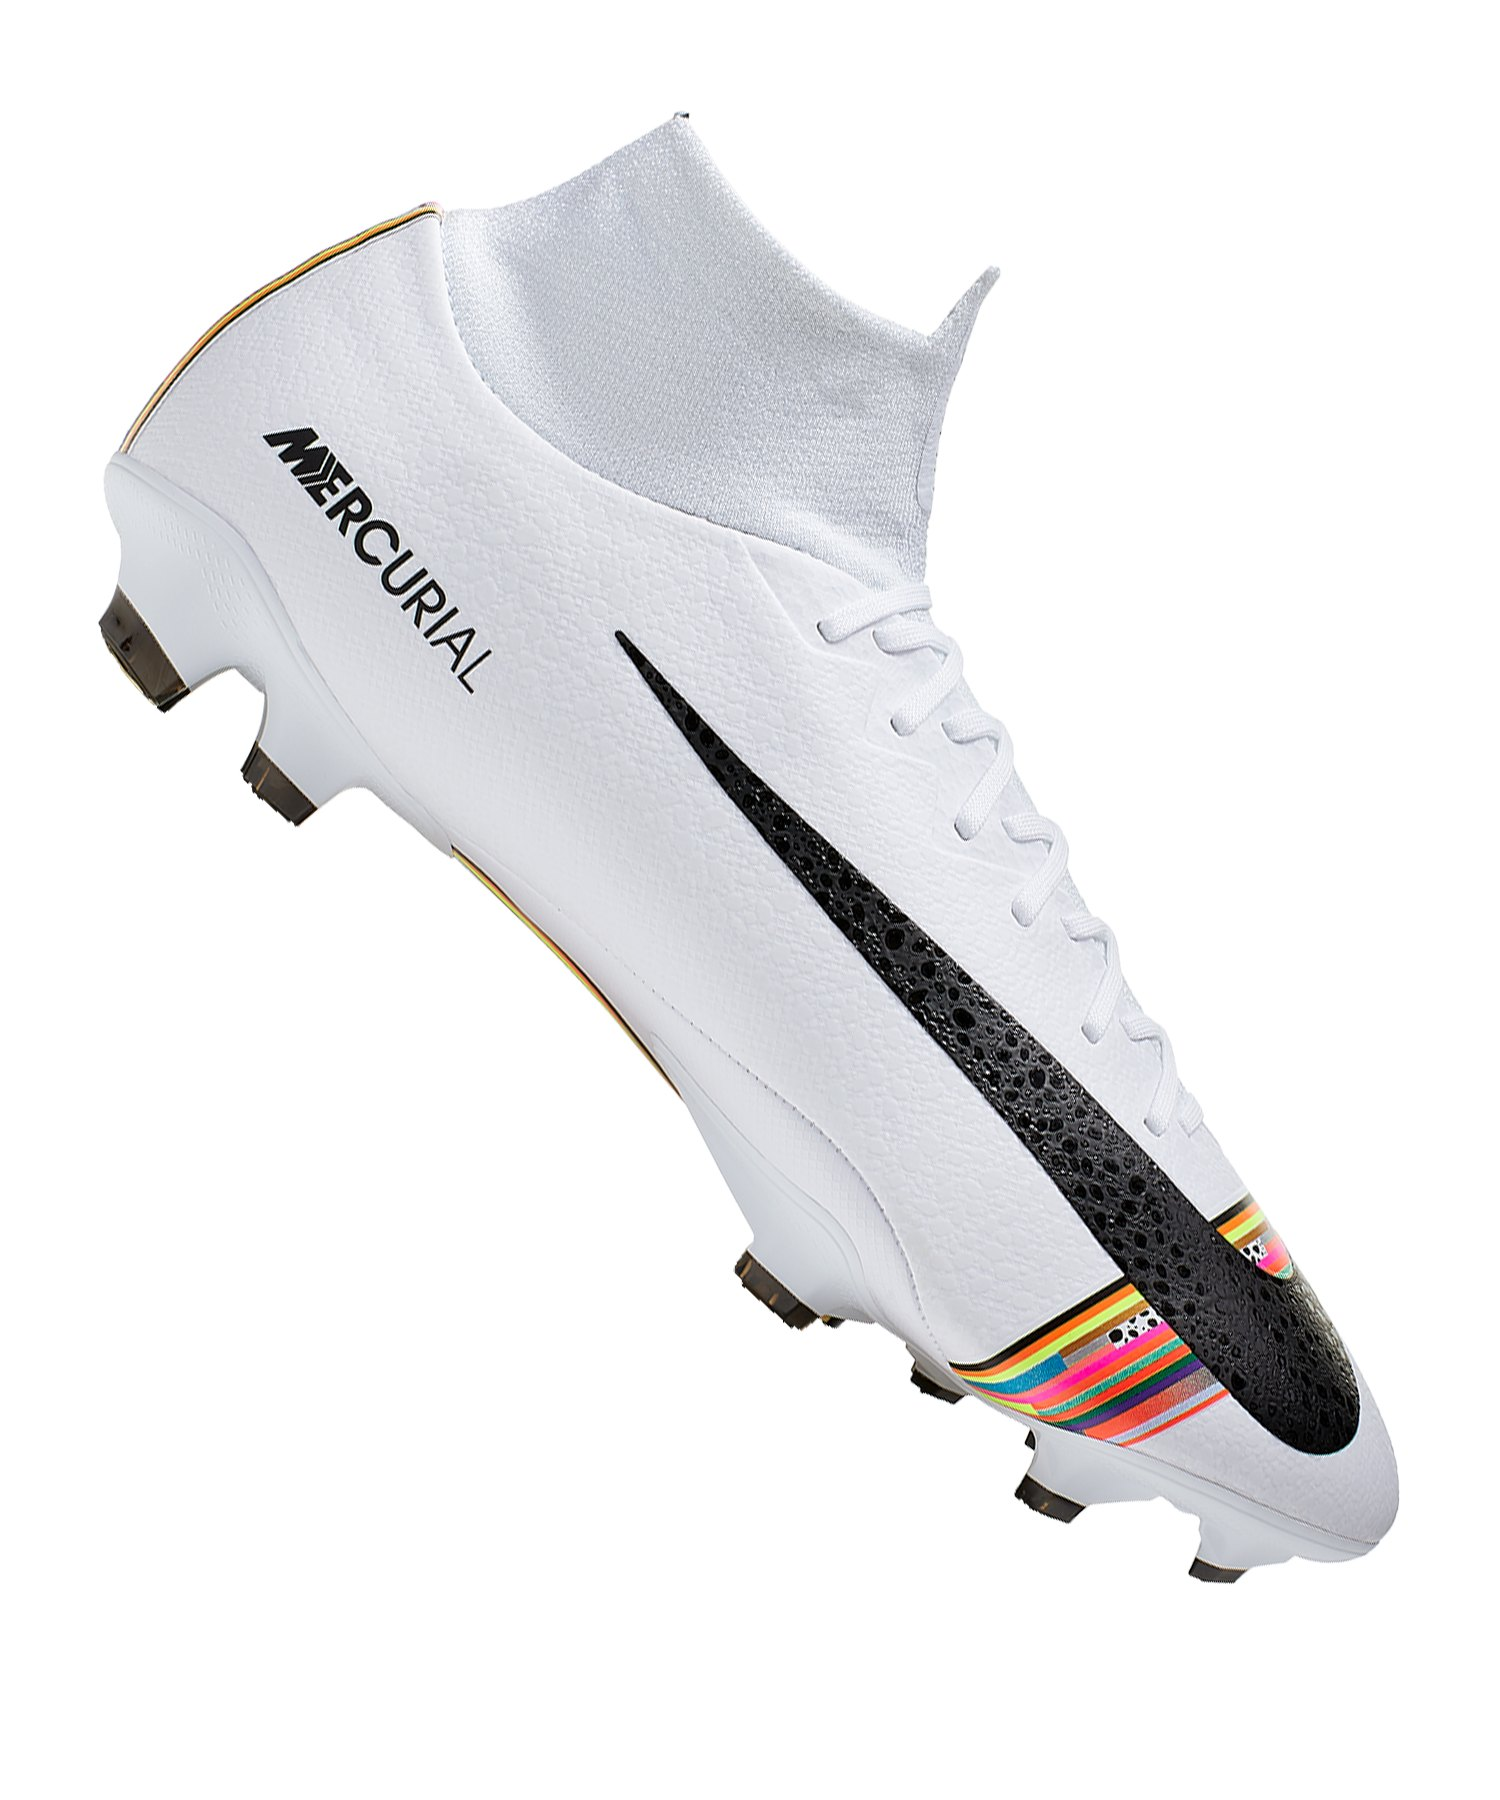 Nike Mercurial Superfly VI Pro FG Weiss F009 - weiss